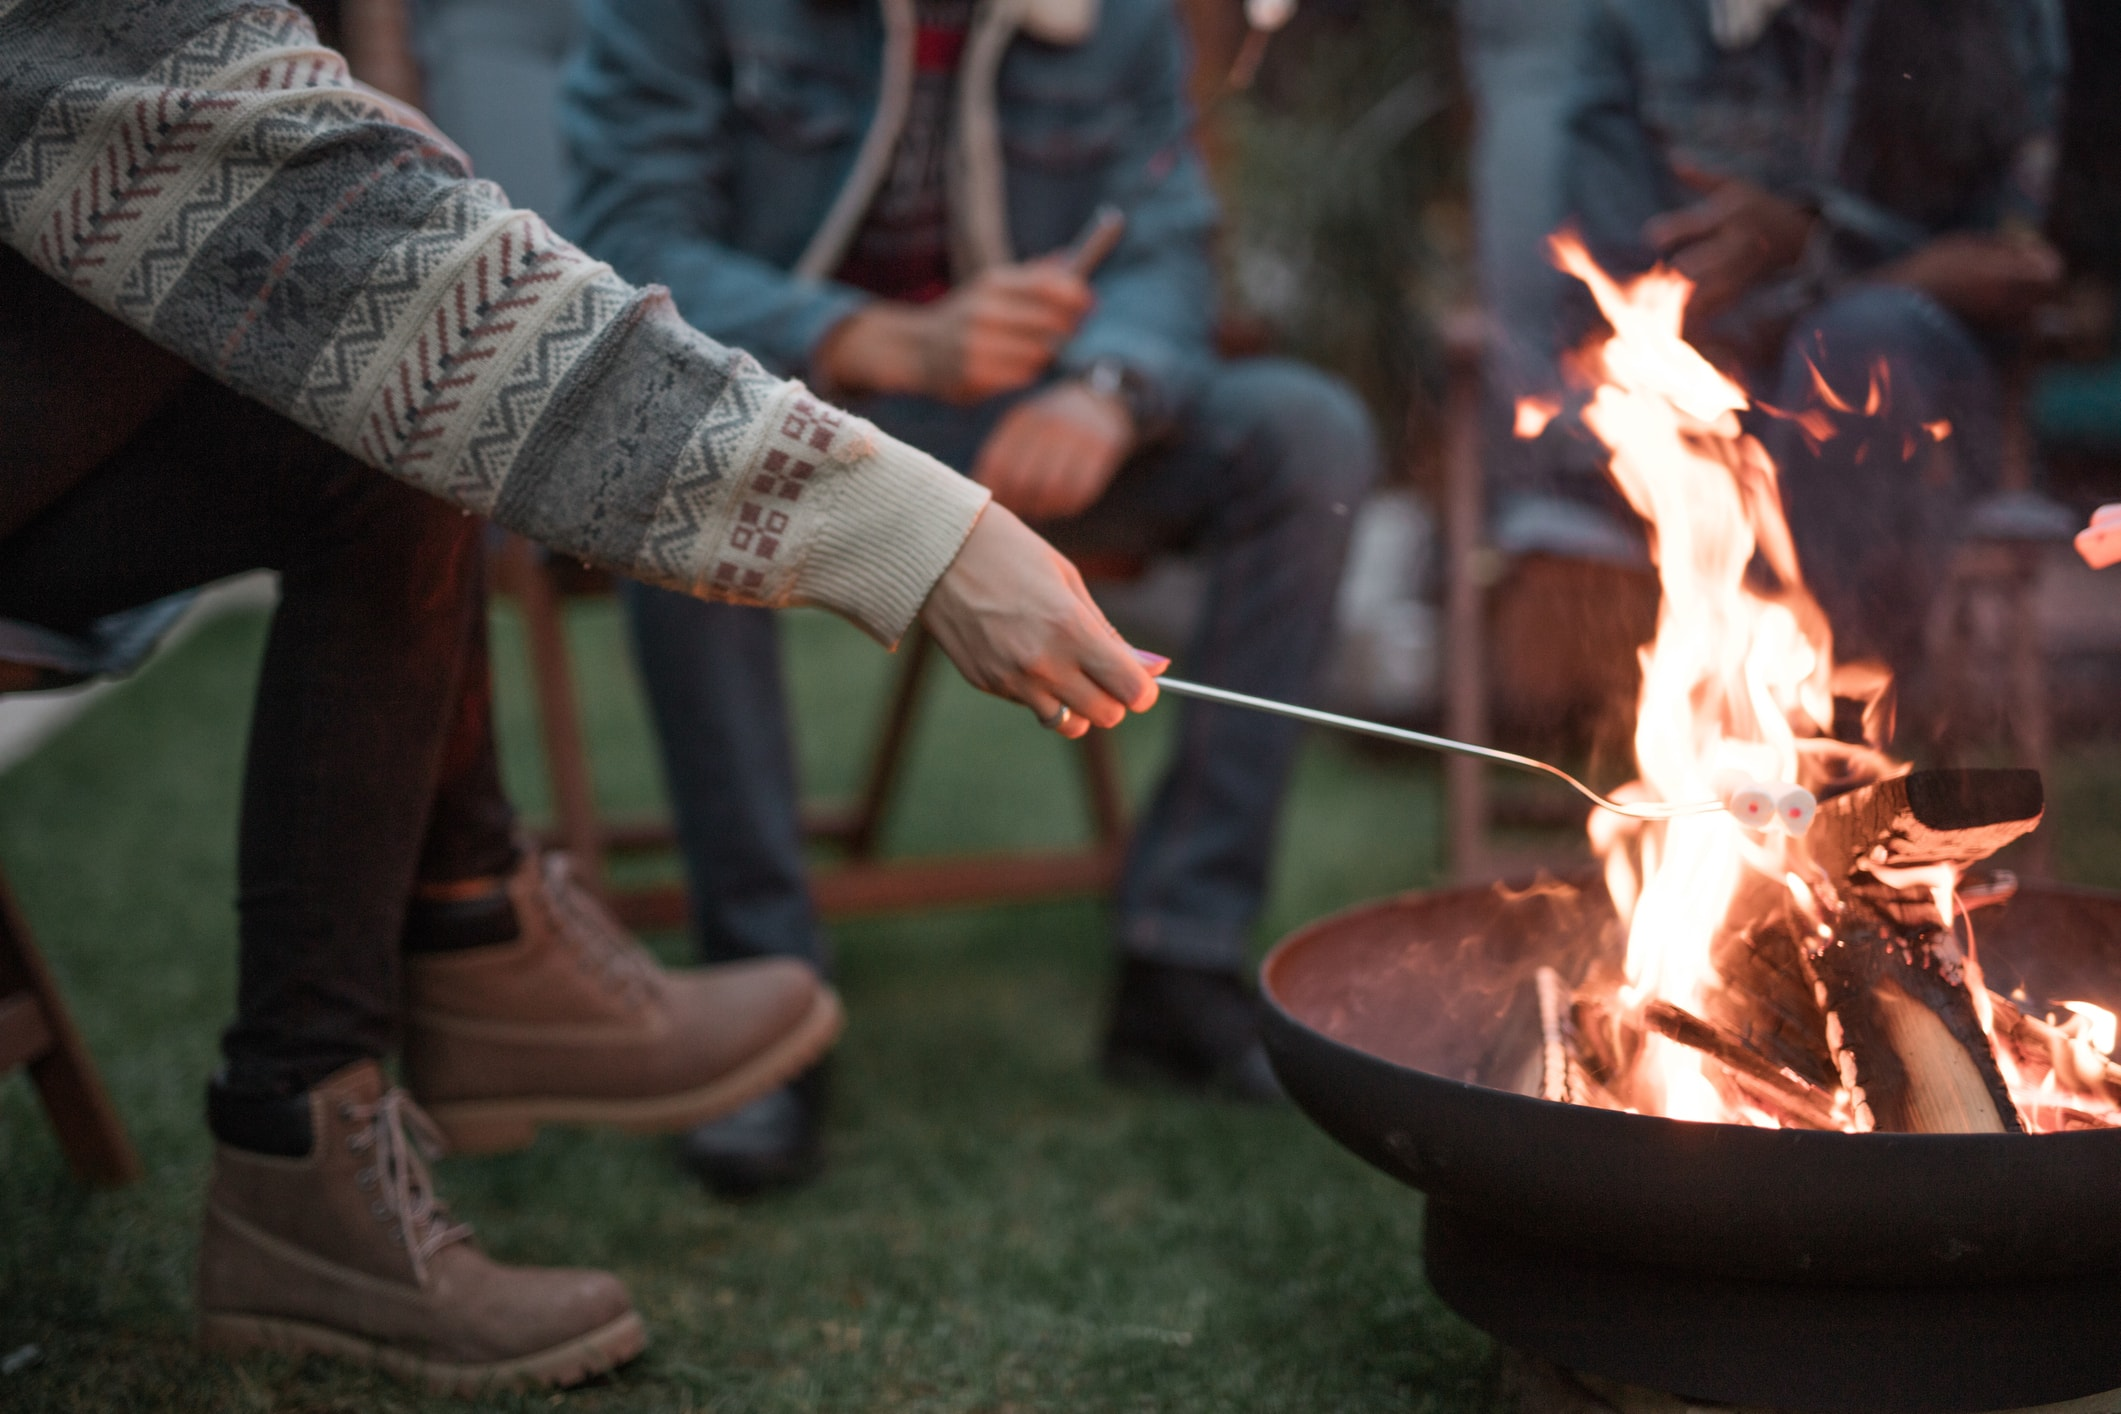 10 Tips to Enjoy Your Fire Pit Safely